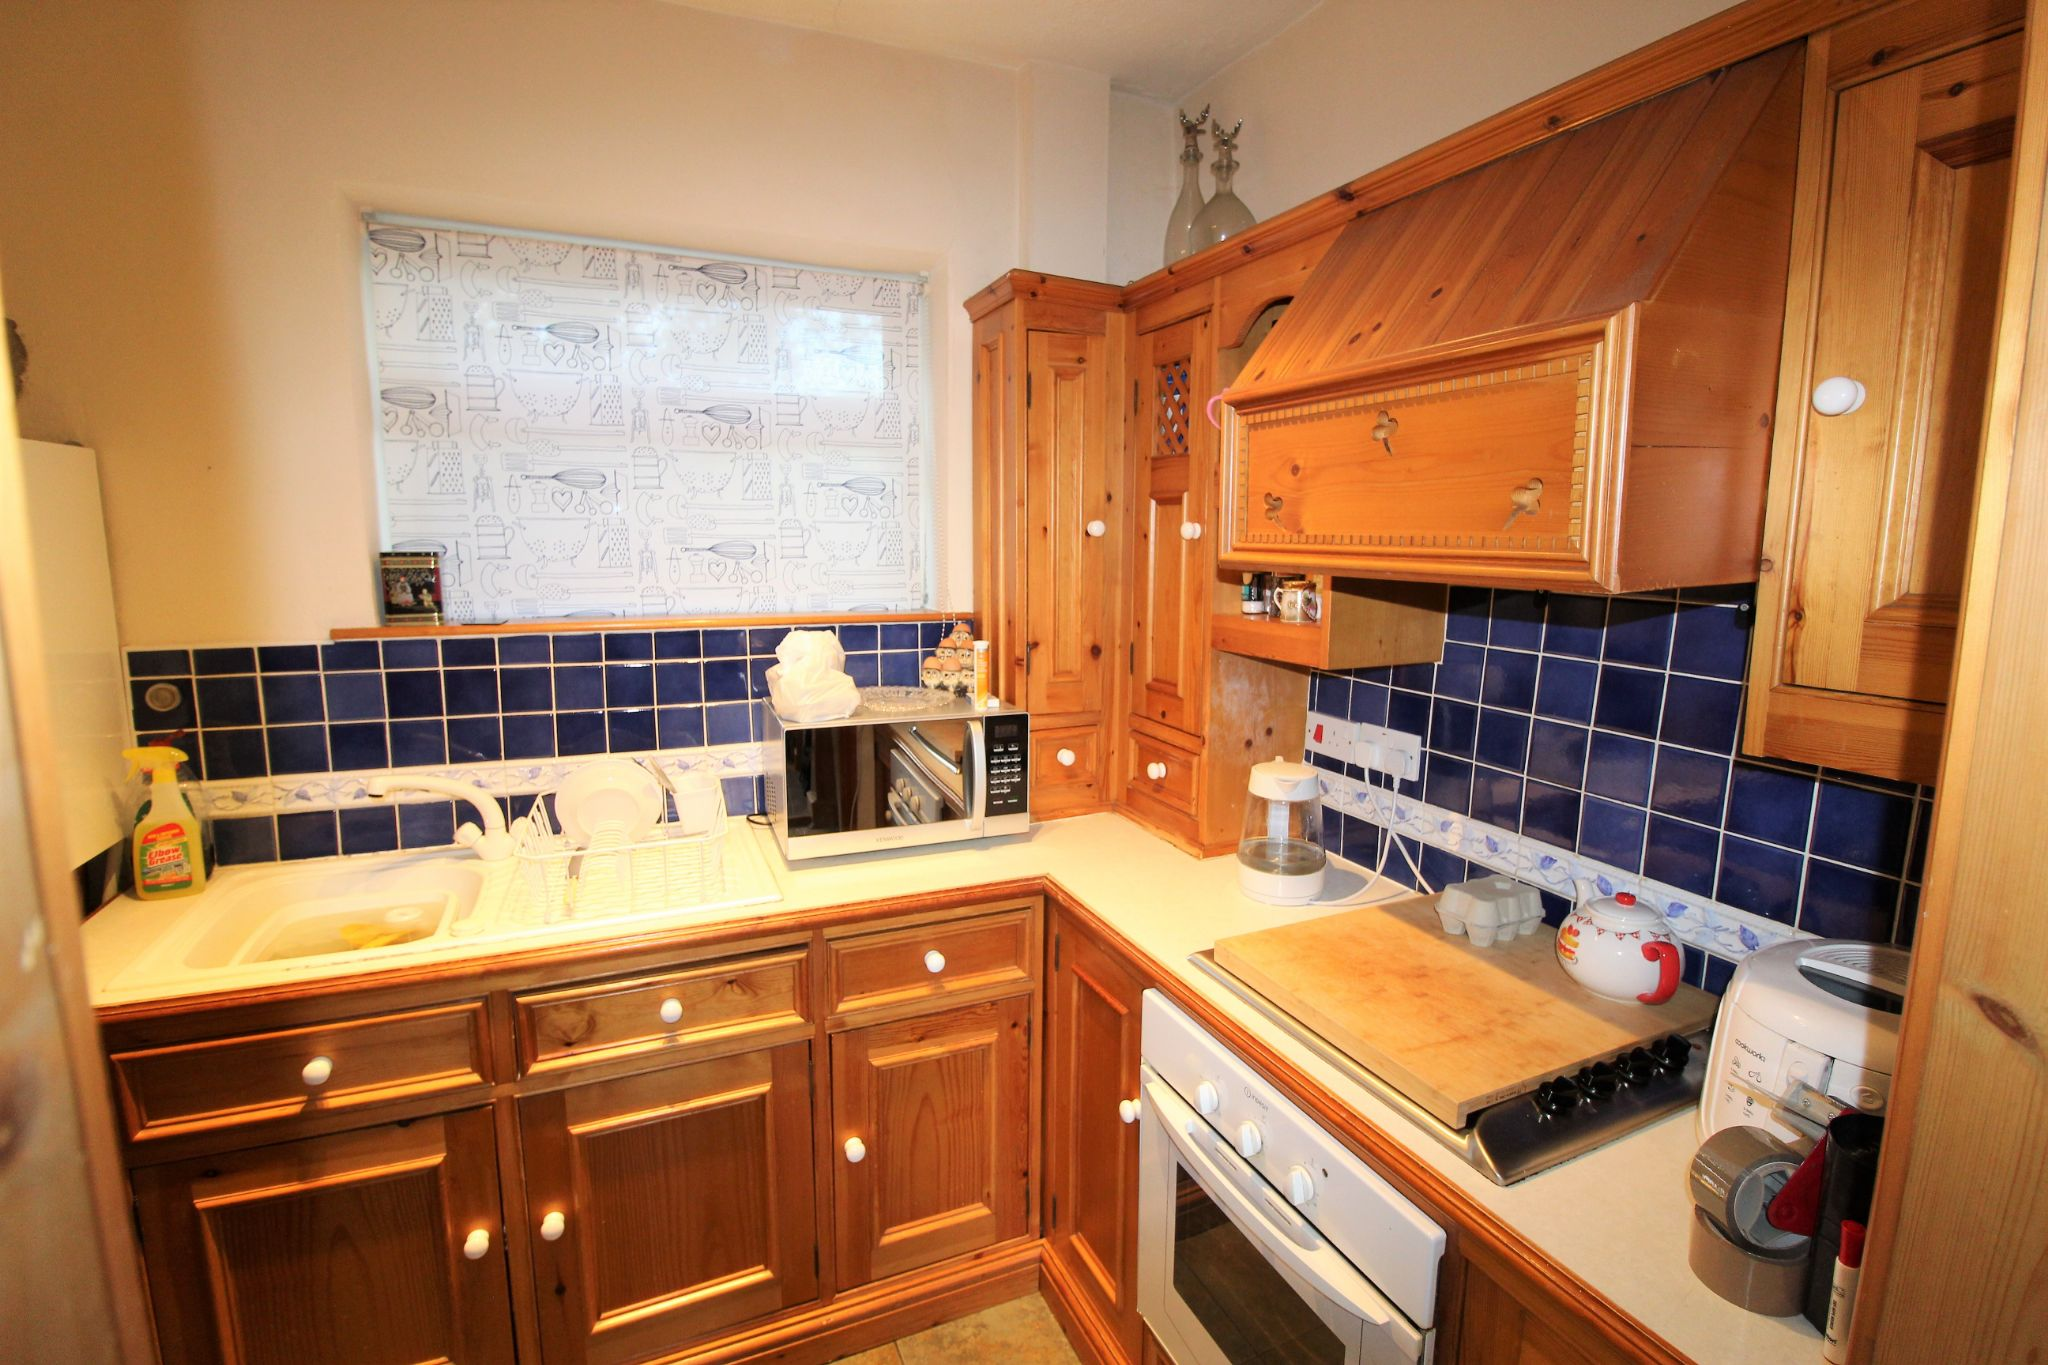 2 bedroom cottage house To Let in Wakefield - Kitchen